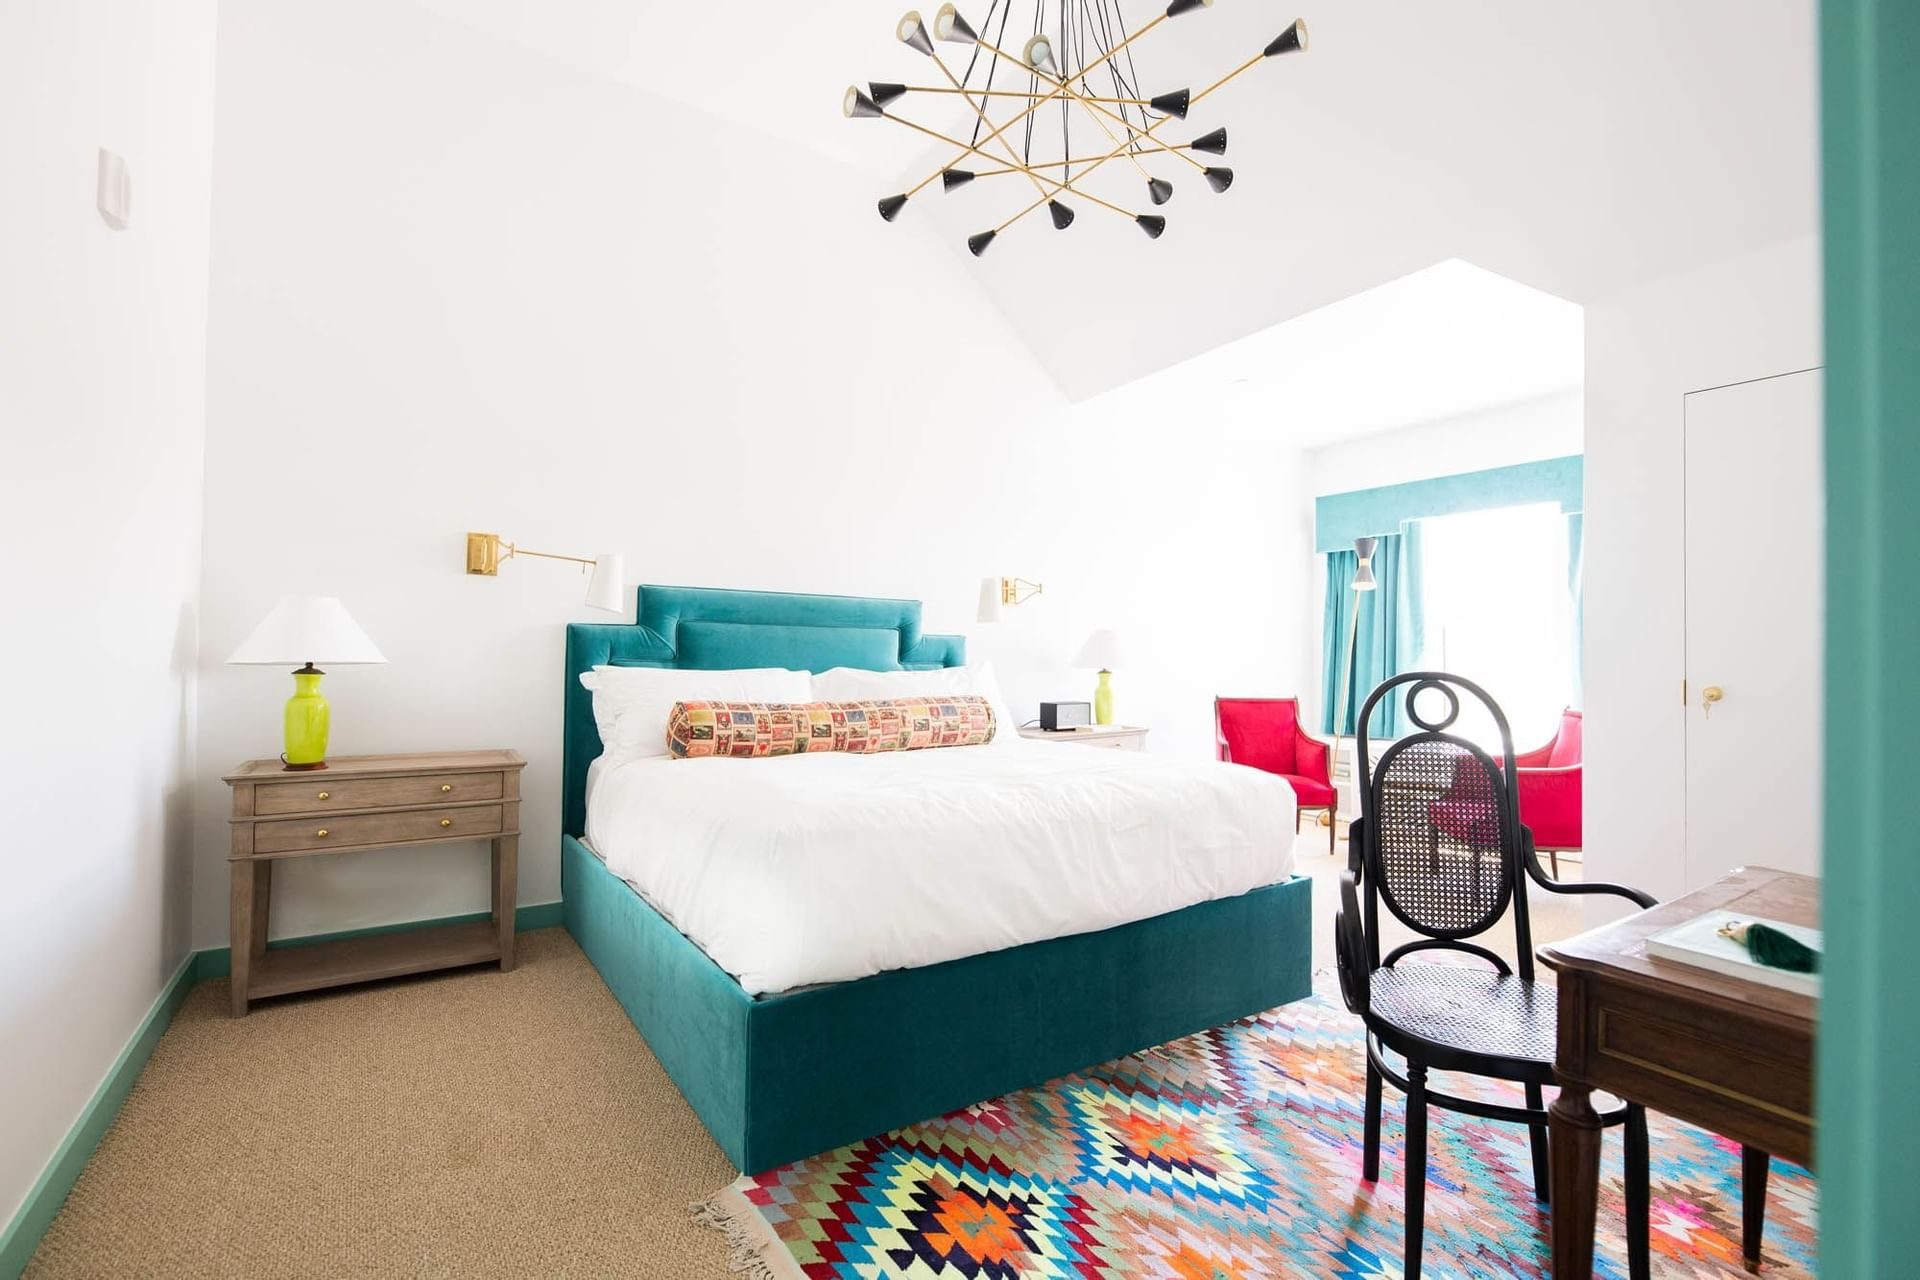 bed with blue bedframe in white room